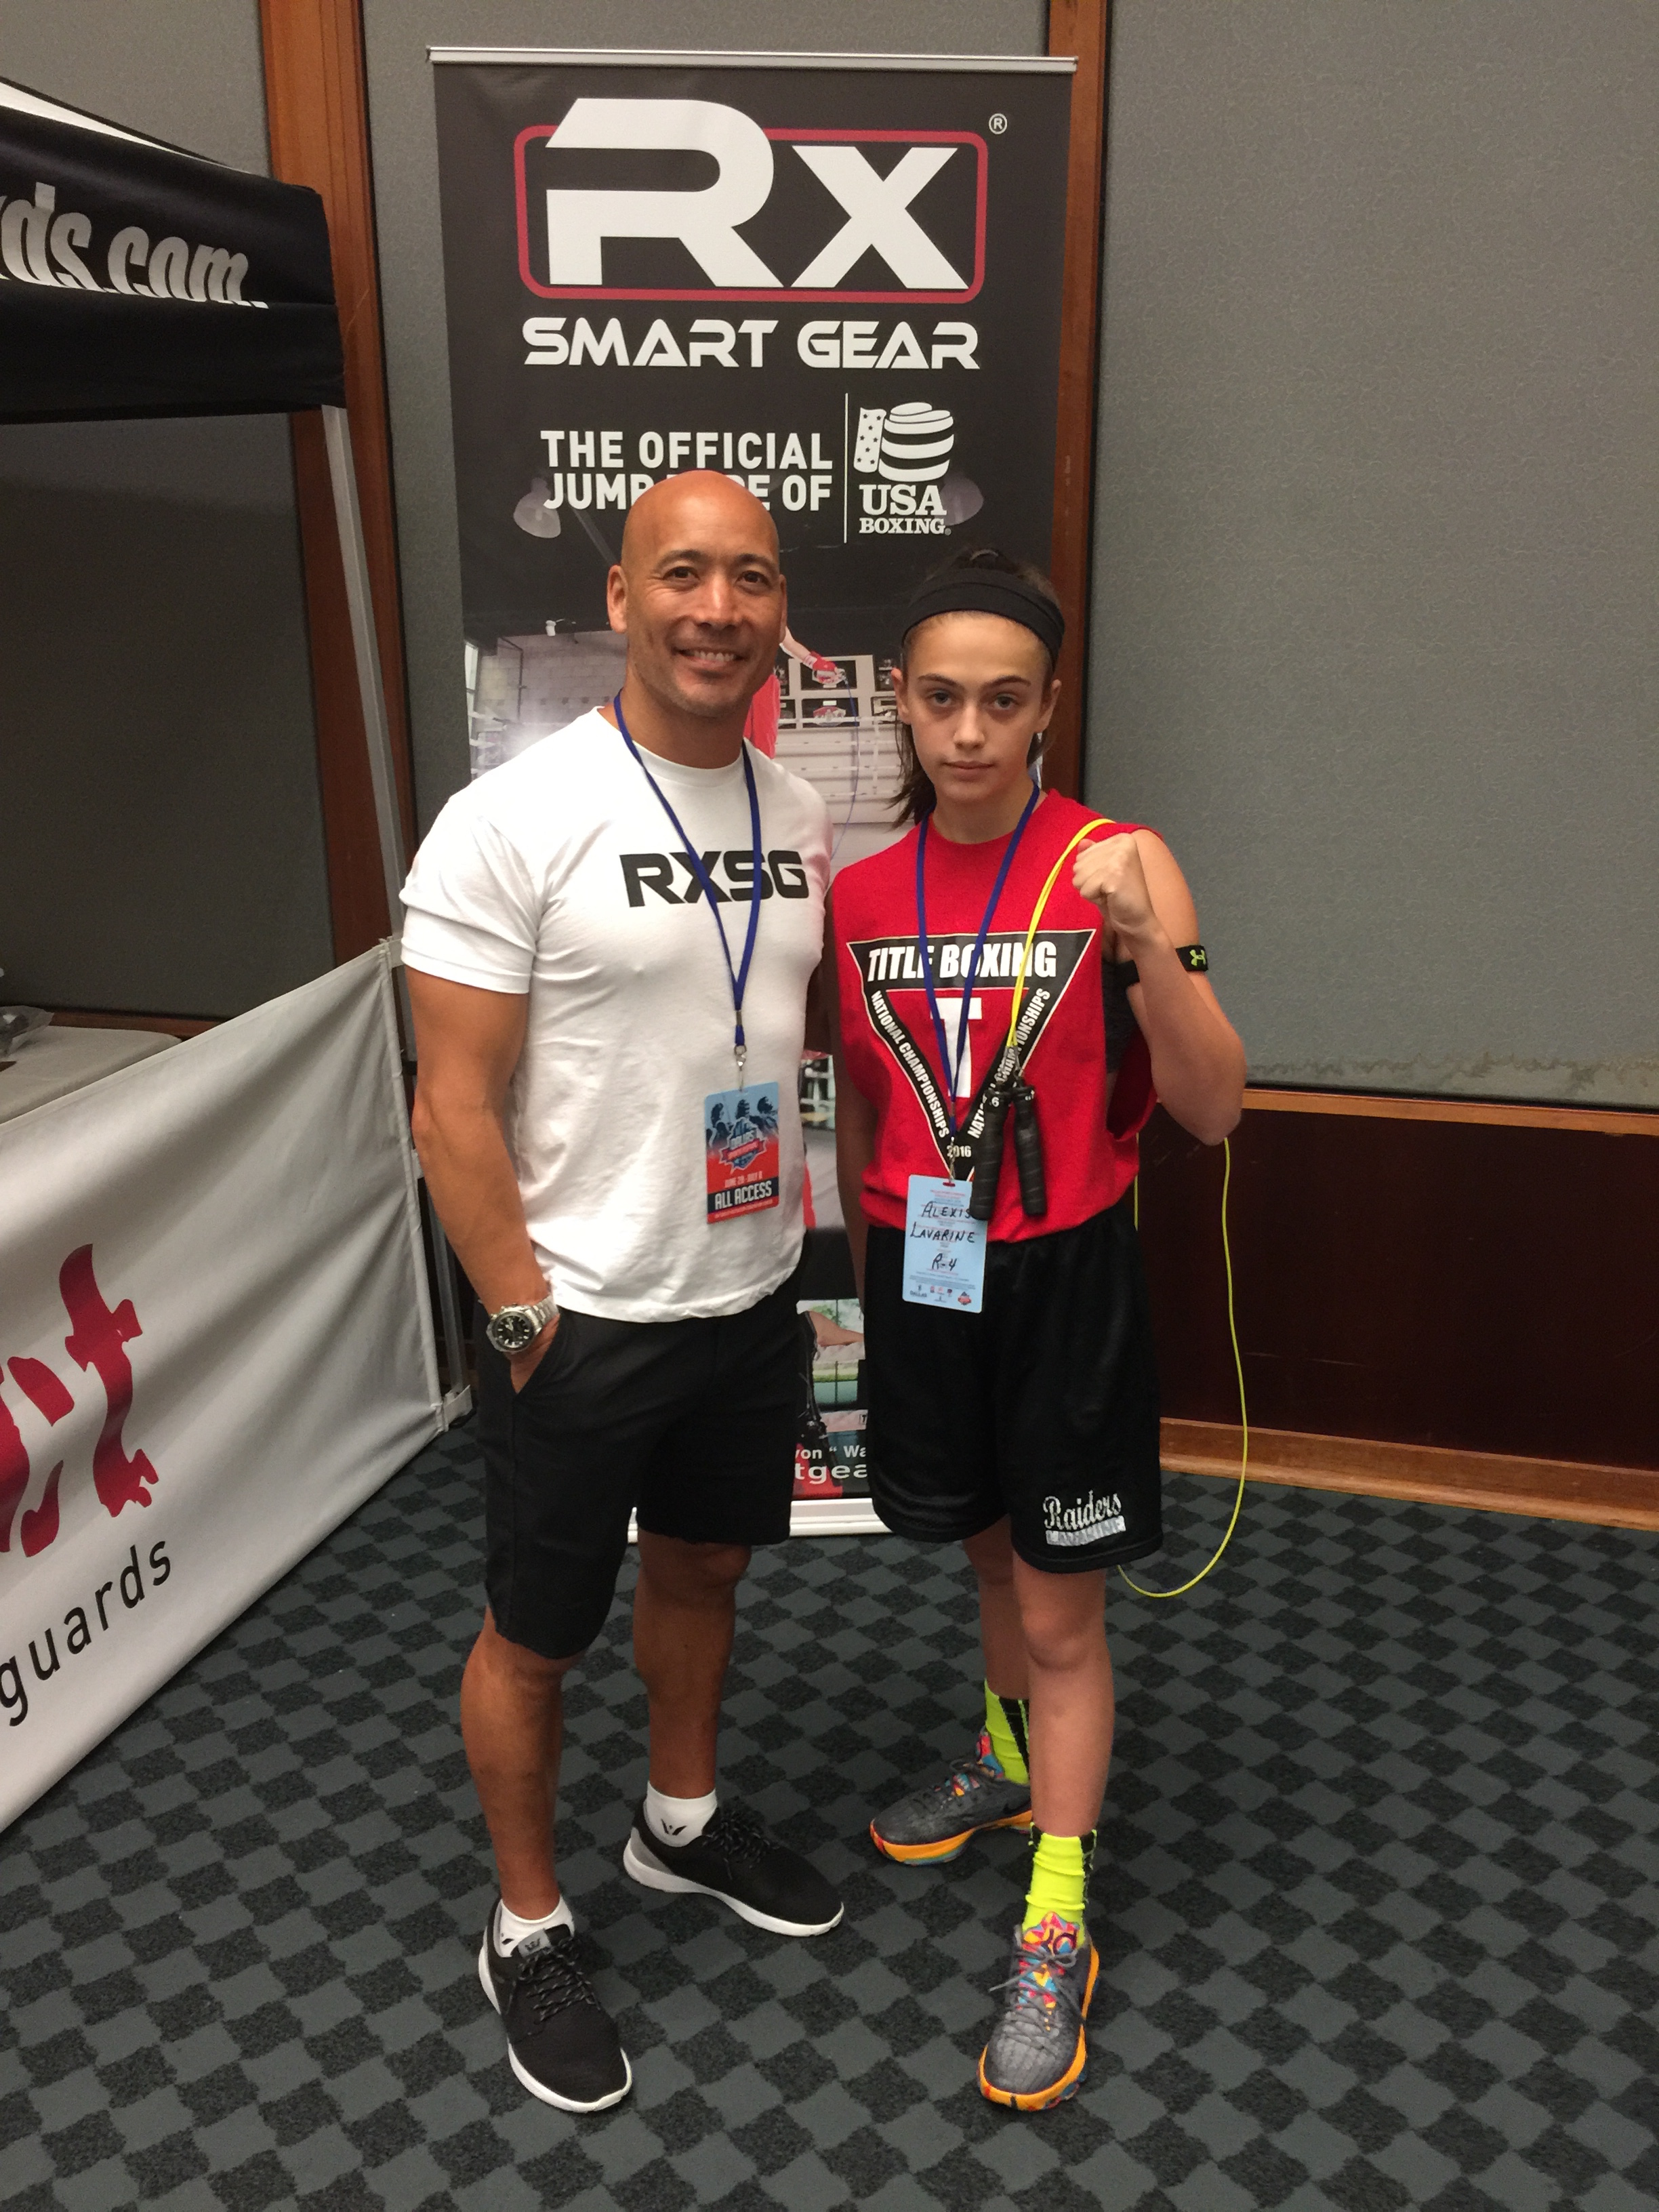 13 yr old 6 time National Champion and 2 time World Champion shows off the best jump ropes in the business at the 2016 Junior Olympics in Dallas, Tx.  RX Smart Gear!!!!  Give Owners Susan and David a shout and order yours today!!!  www.rxsmartgear.com